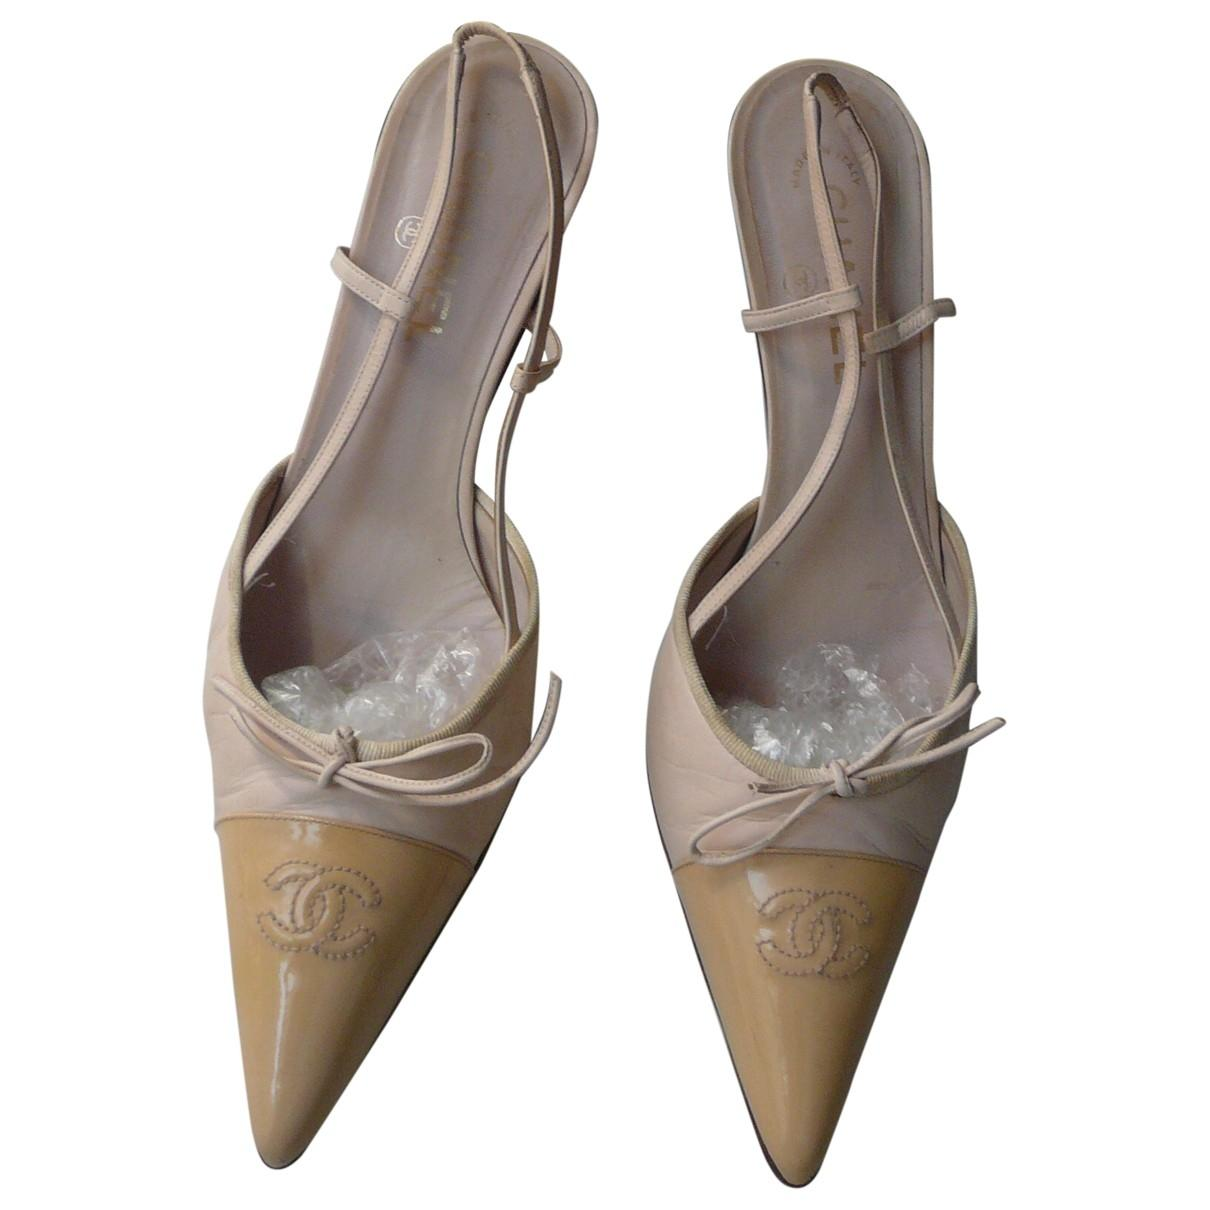 69660fa433d Chanel. Women s Natural Slingback Leather Heels.  316 From Vestiaire  Collective